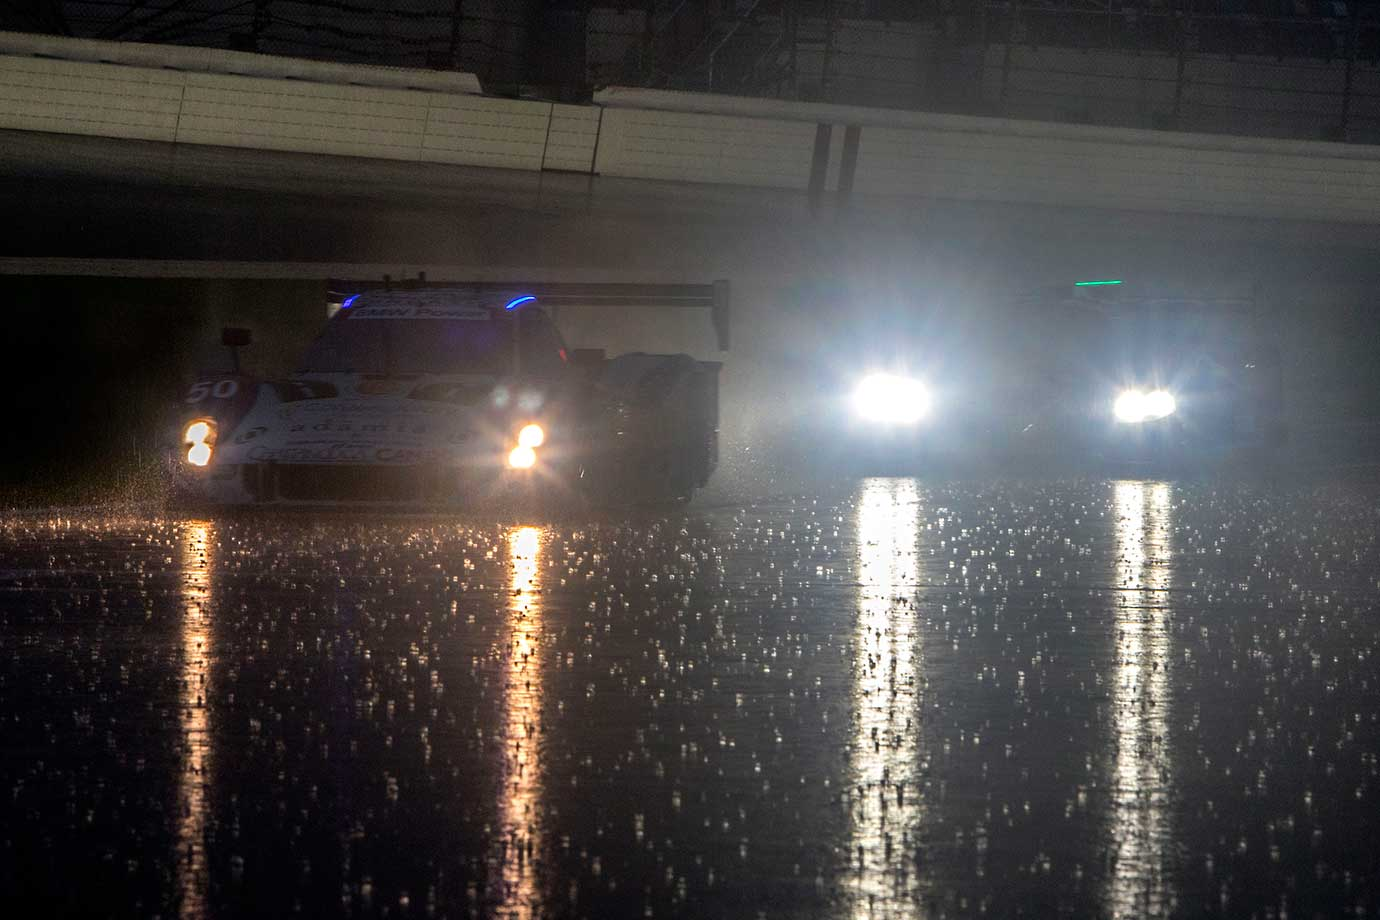 Cars drive on pit road in the rain during practice for the Rolex 24 at Daytona at Daytona International Speedway in Florida.